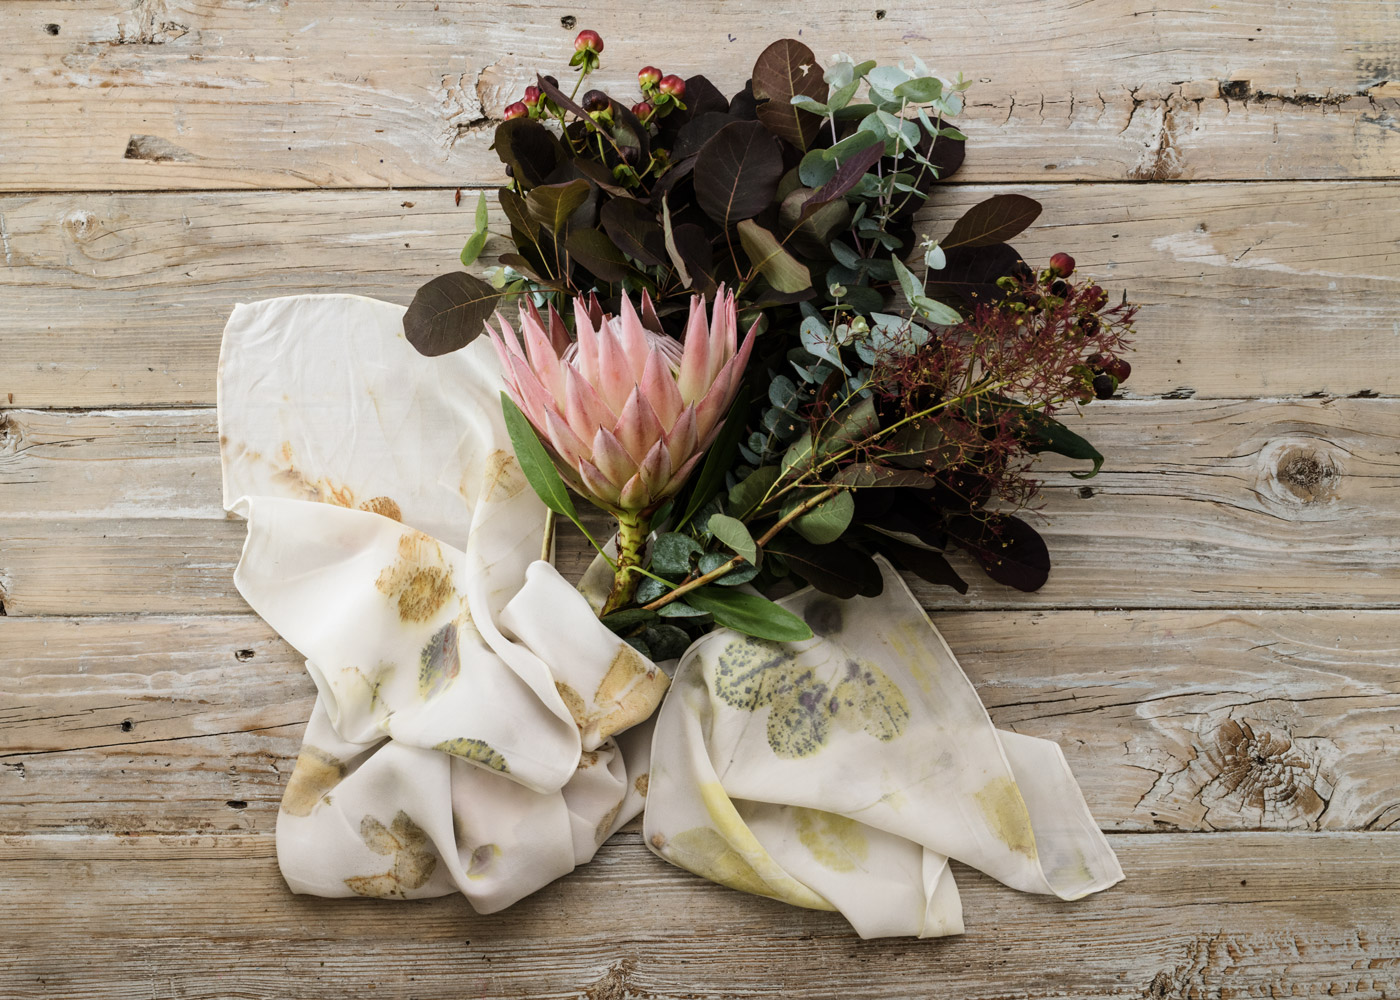 BOUQUET SCARF - Tania often makes commissioned scarves using flowers given to her from wedding bouquets, grandmother's rose gardens or funeral flowers... to create tangible memories people can wear. Get in touch if you are interested